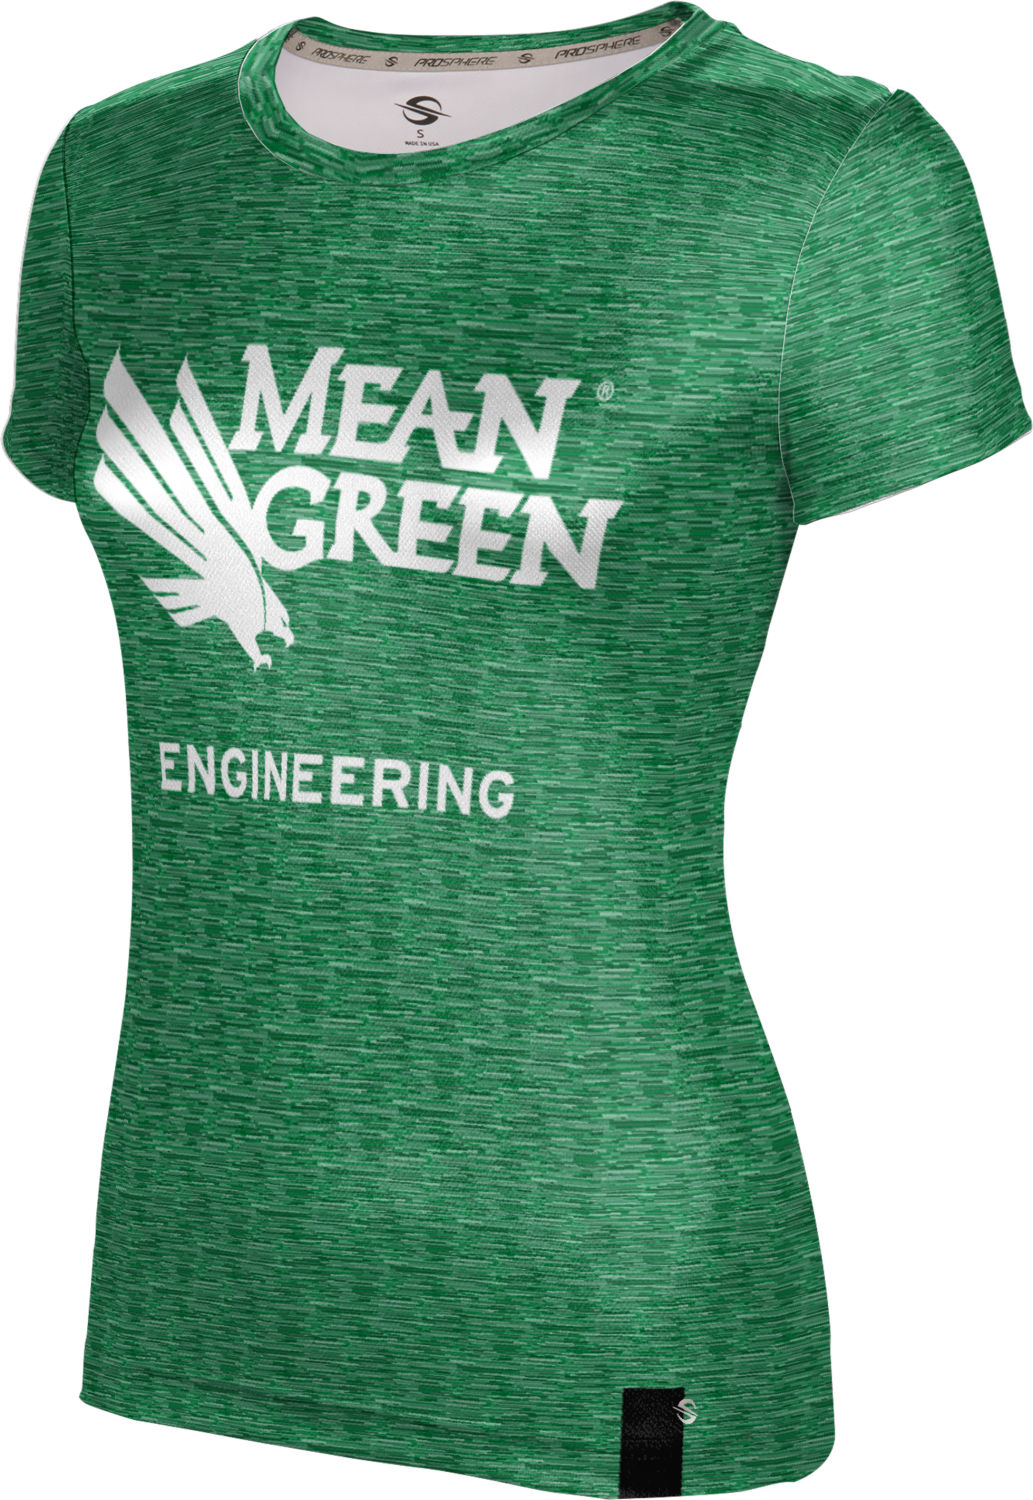 ProSphere Engineering Women's Short Sleeve Tee